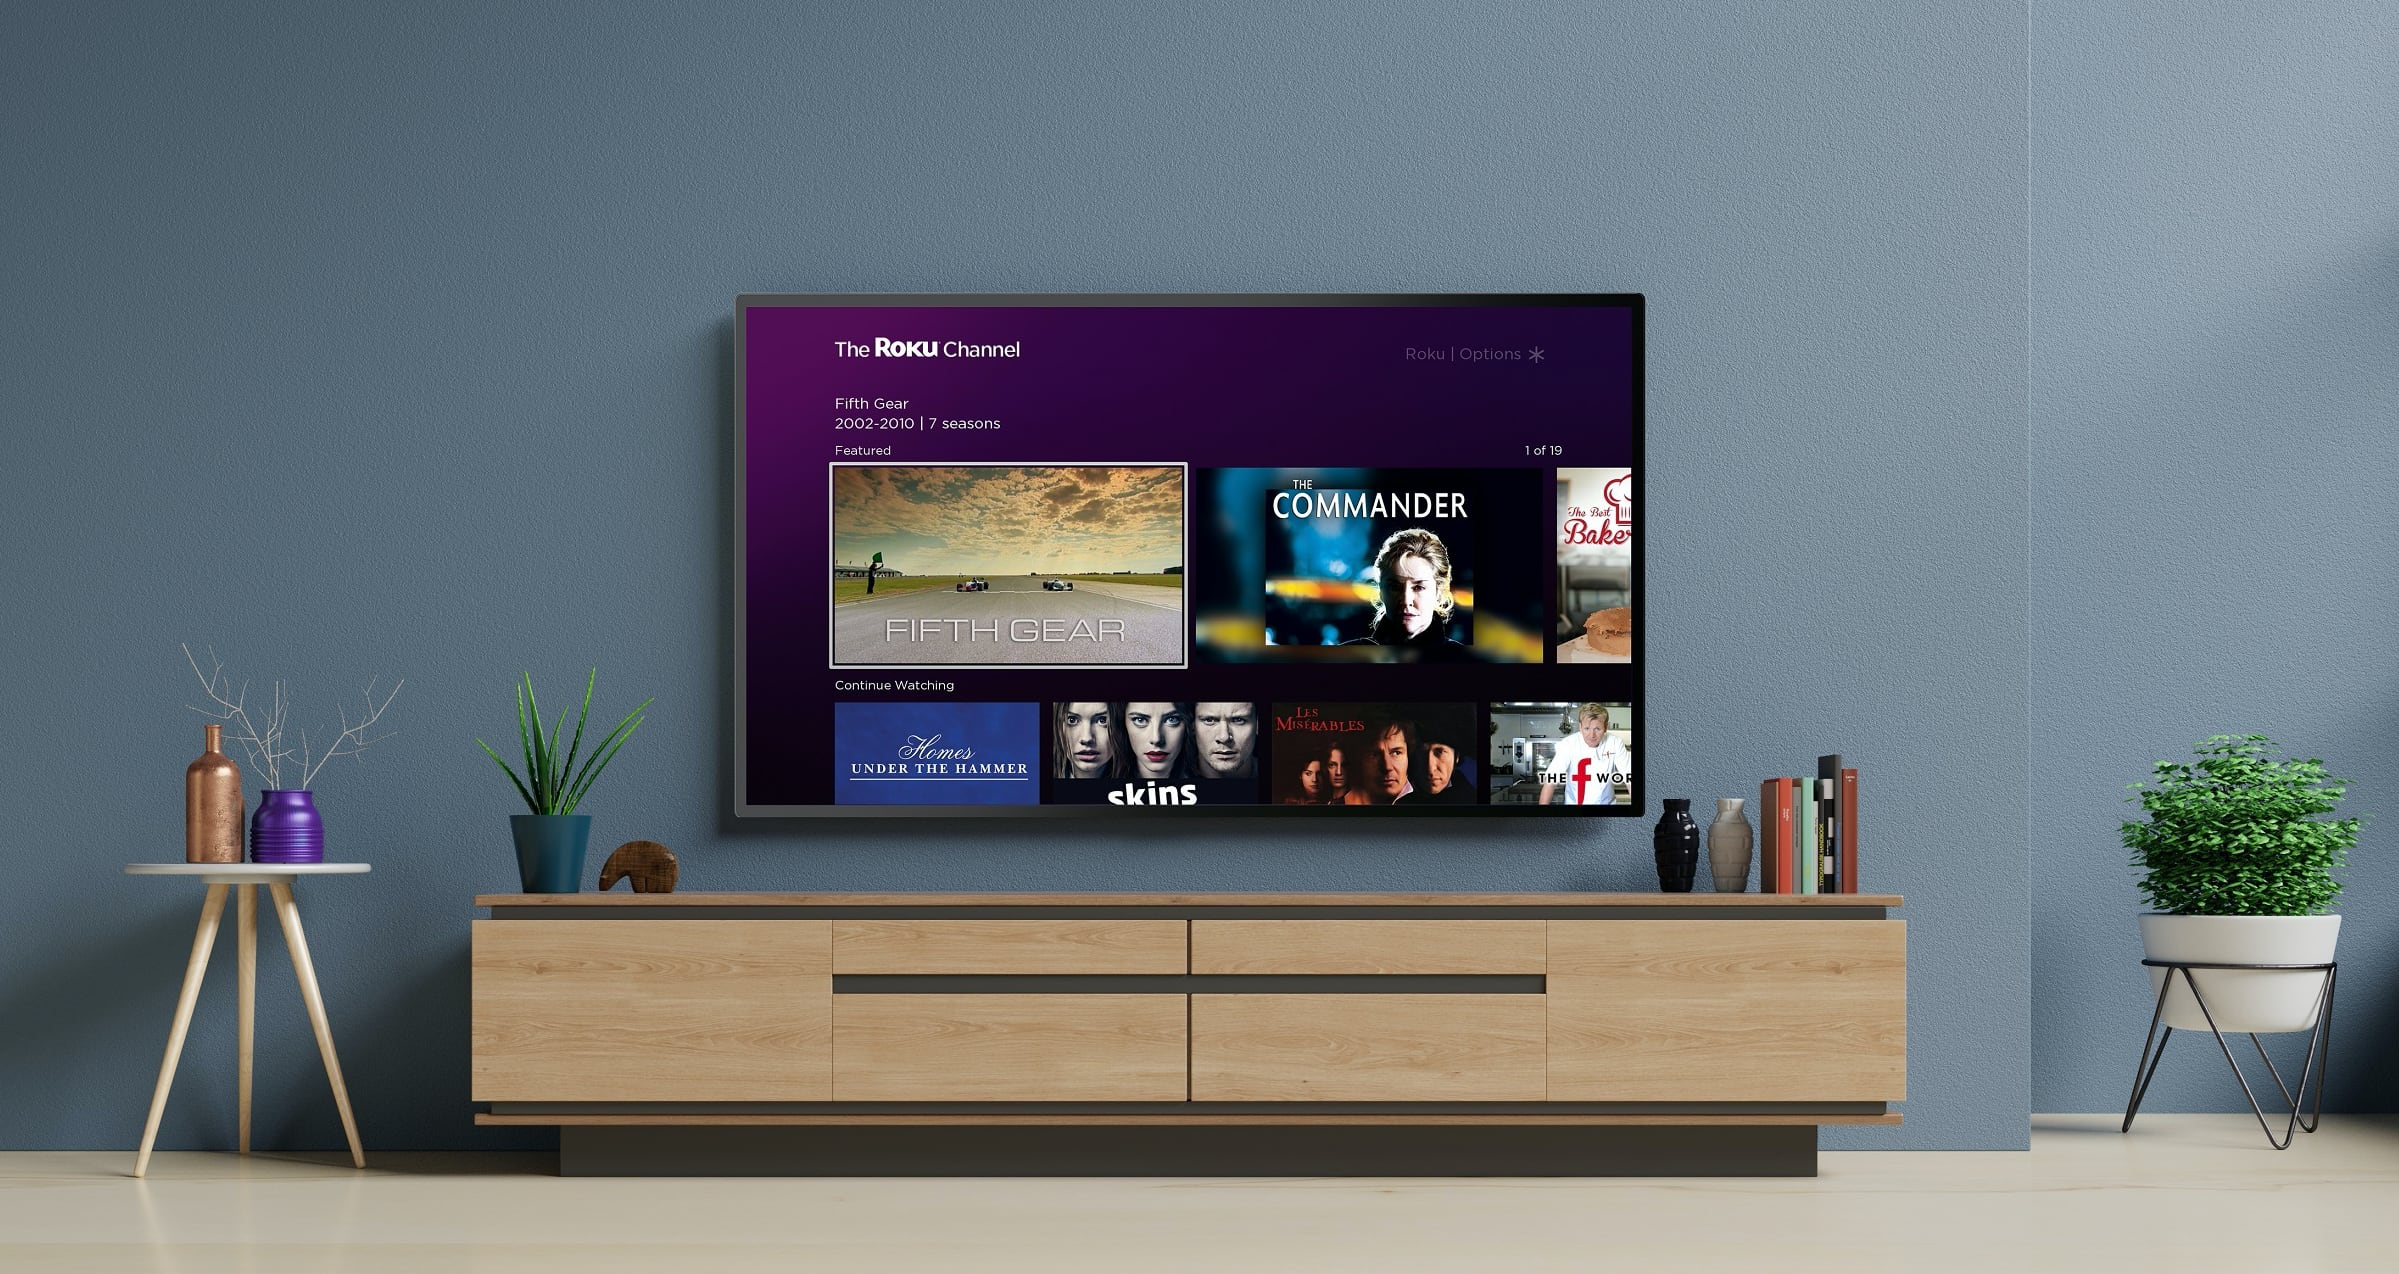 Best Free Roku Channels 2021 Roku launches its free, ad supported Roku Channel in the UK